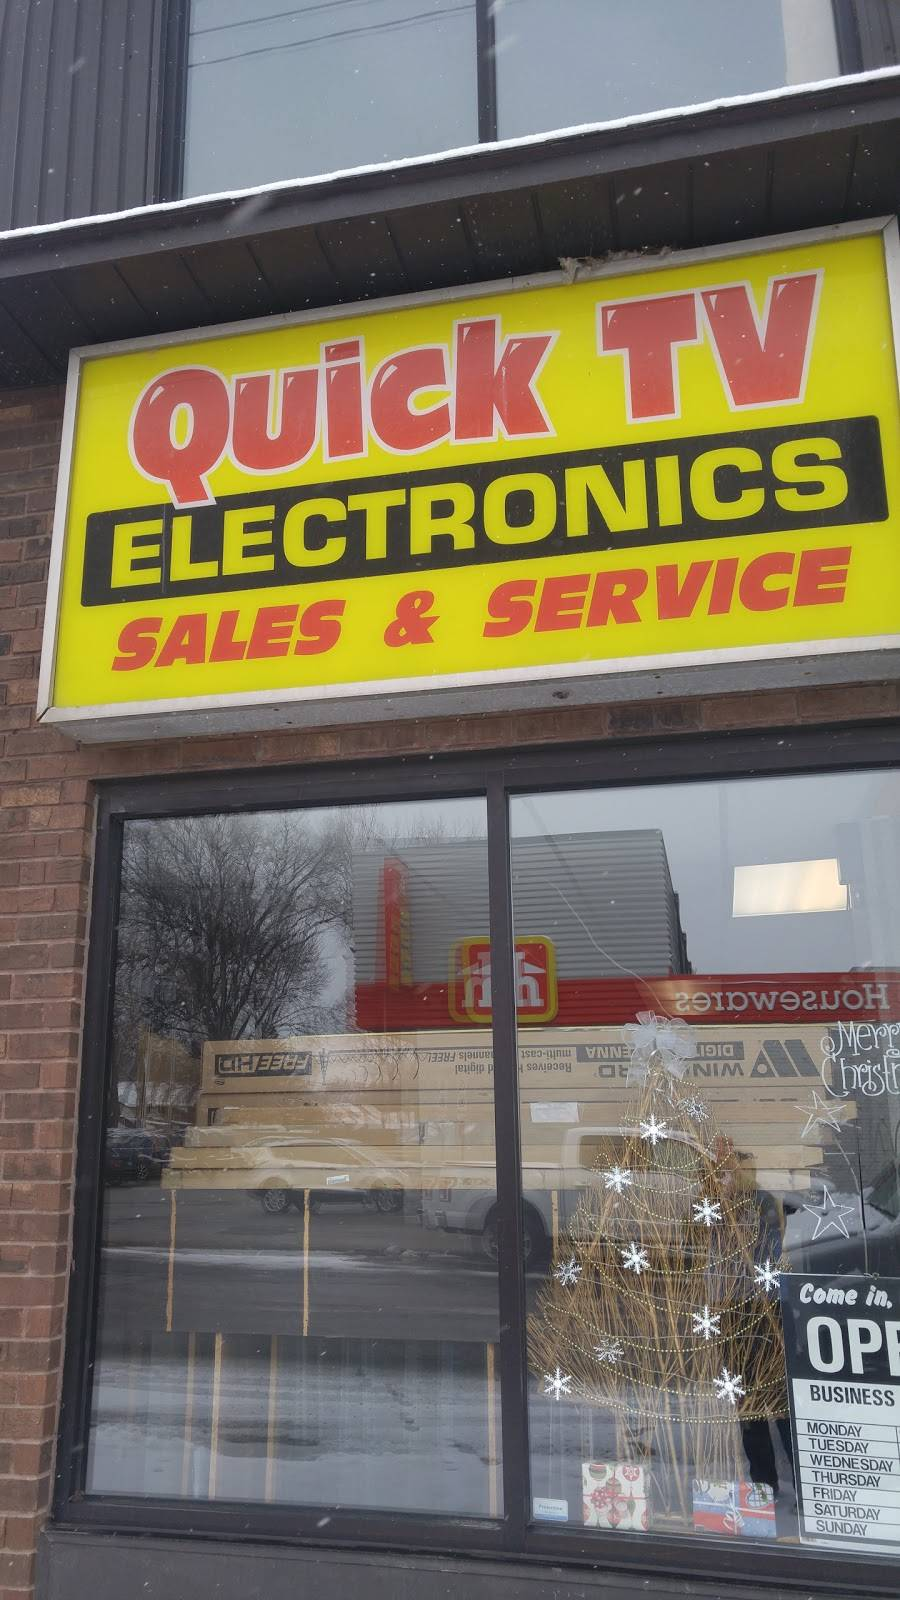 Quick TV Service & Repair - electronics store  | Photo 2 of 3 | Address: 3921 Seminole St, Windsor, ON N8Y 1Z1, Canada | Phone: (519) 945-5558